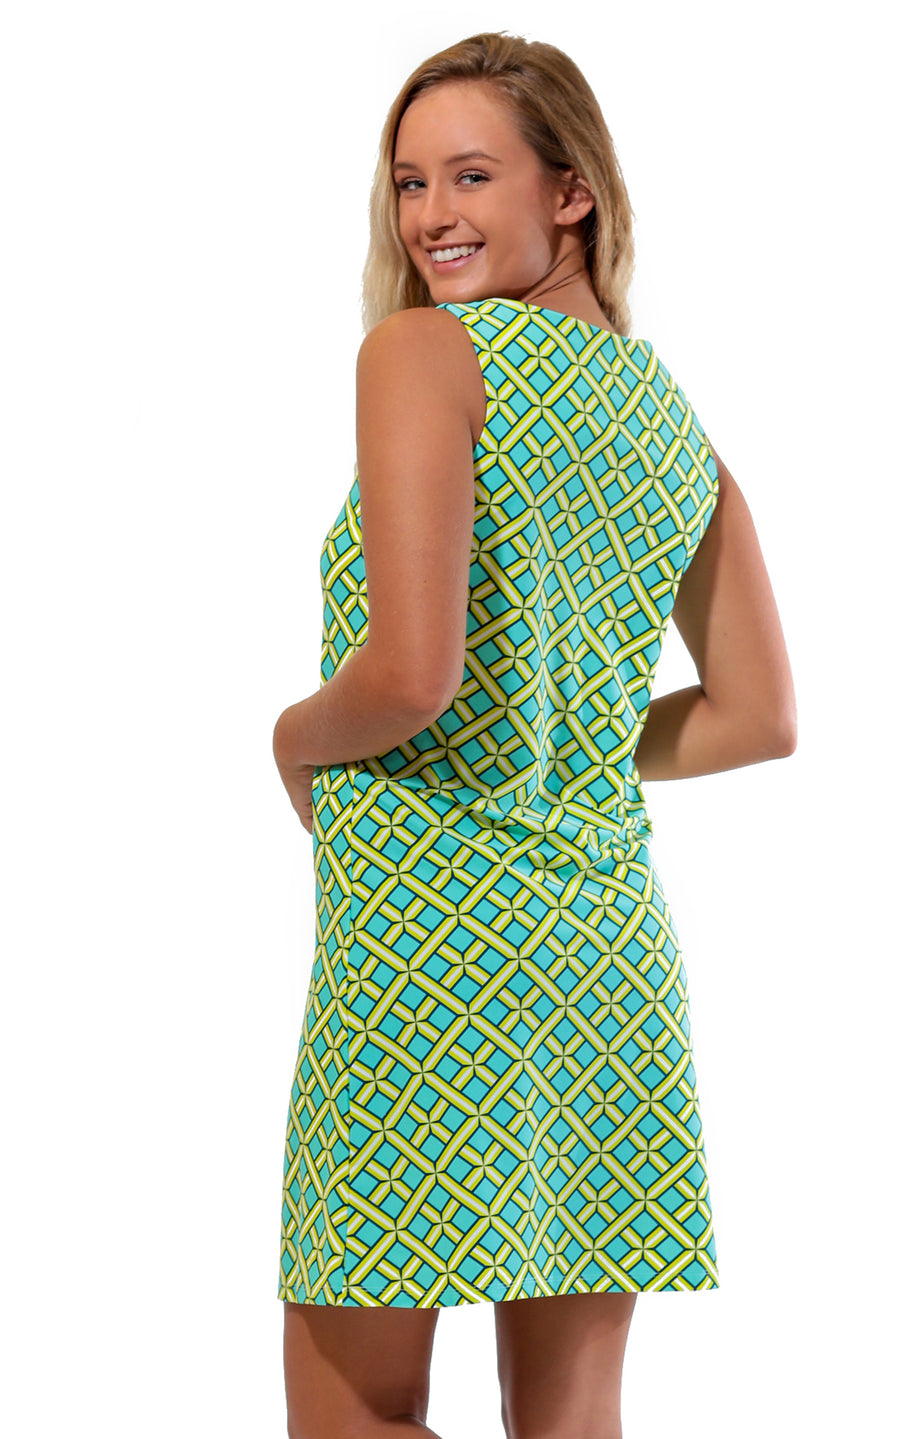 All For Color-Citrus Grove West Ave Shift Dress - FINAL SALE-Dresses